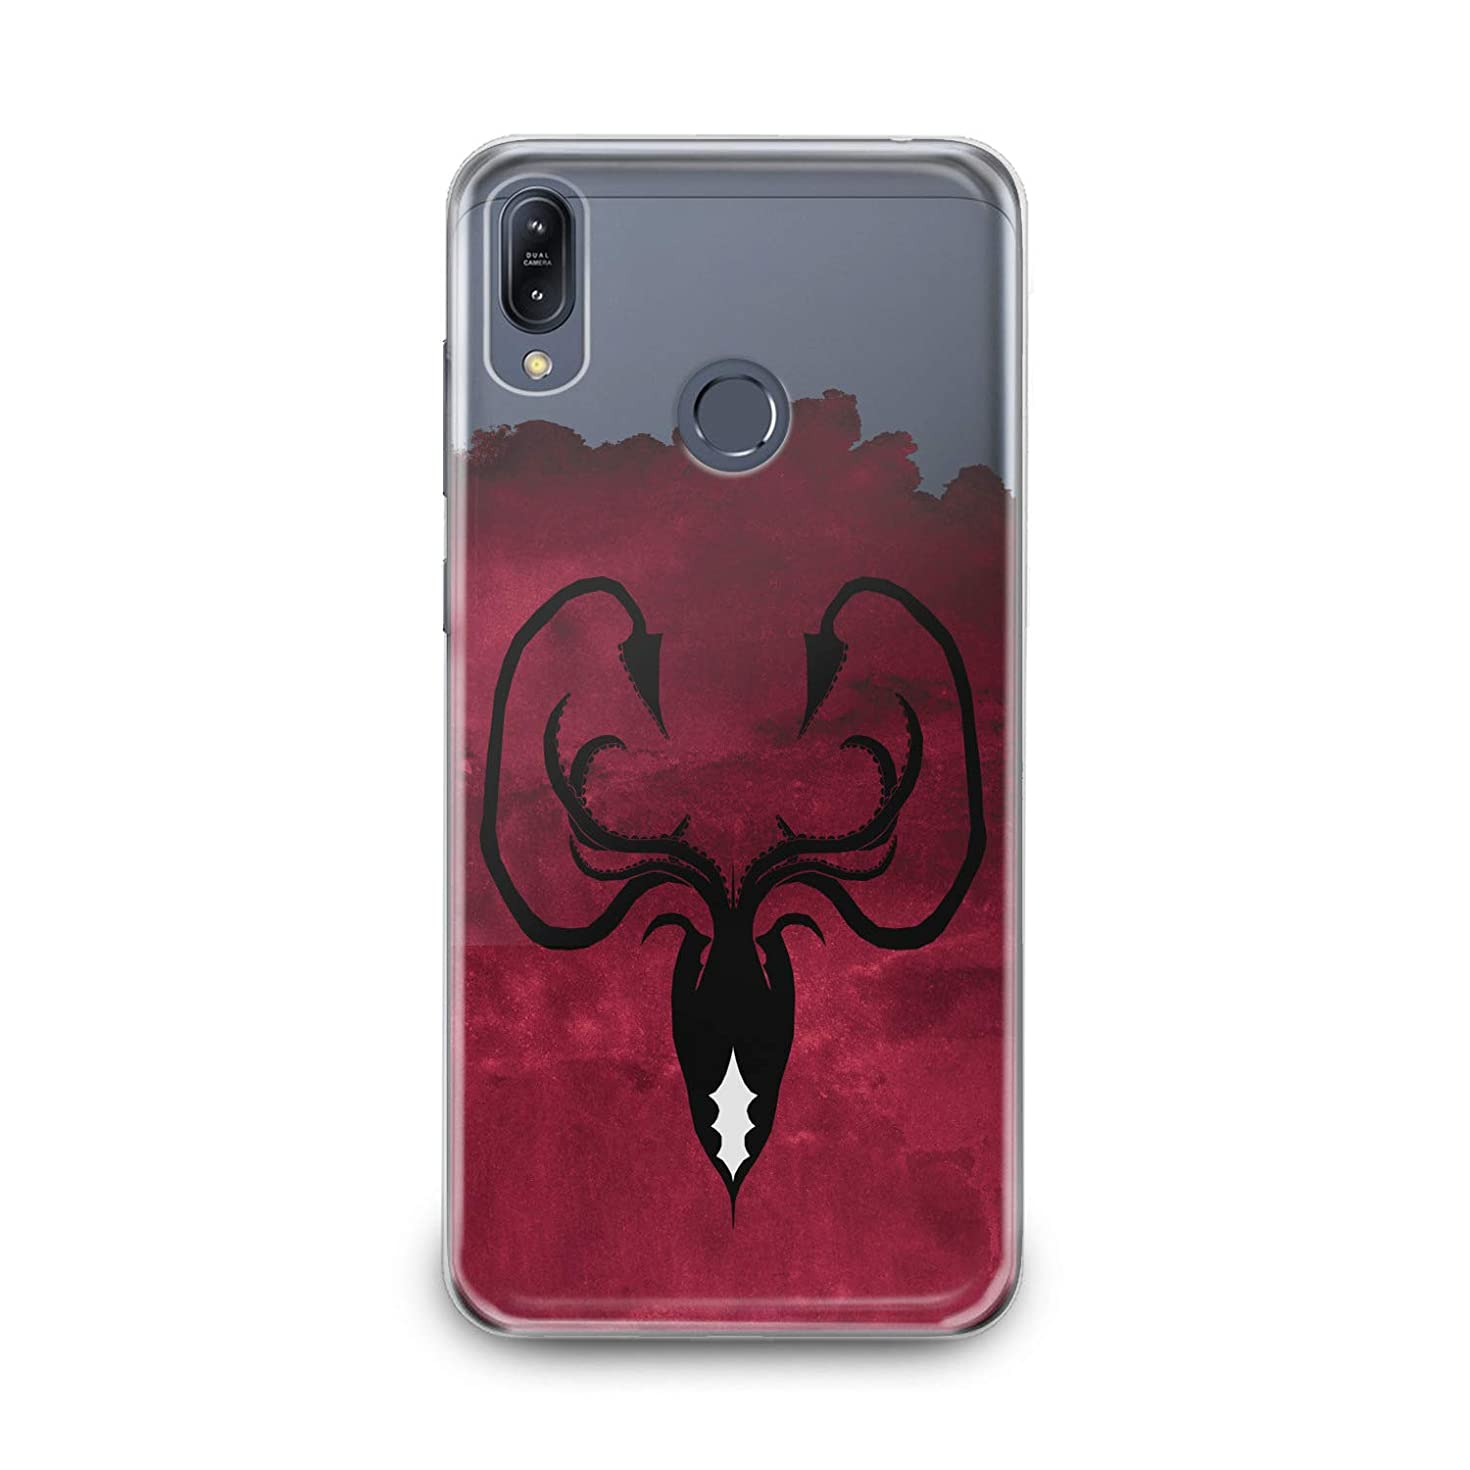 Lex Altern TPU Case for Asus Zenfone Max Plus M1 M2 5z 5 4 Selfie Pro Greyjoy Flexible Octopus Symbol Gift Smooth Black Print Slim fit Game of Thrones Cover Soft Clear Red Design Kingdoms Lightweight